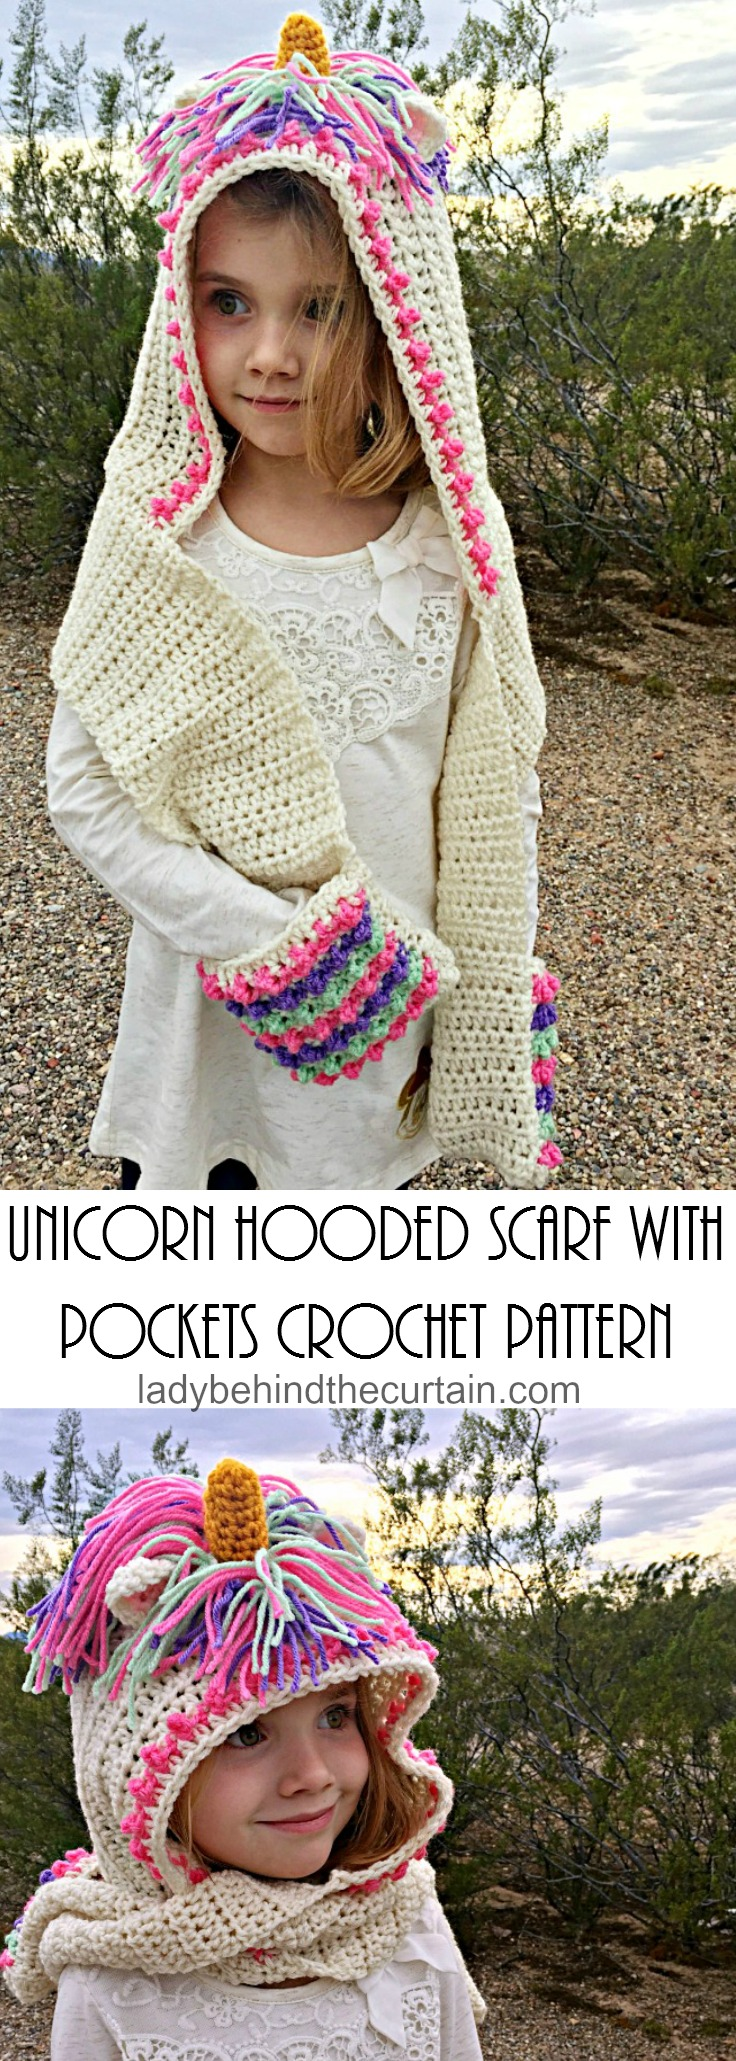 Crochet Hooded Scarf Pattern Awesome Inspiration Ideas